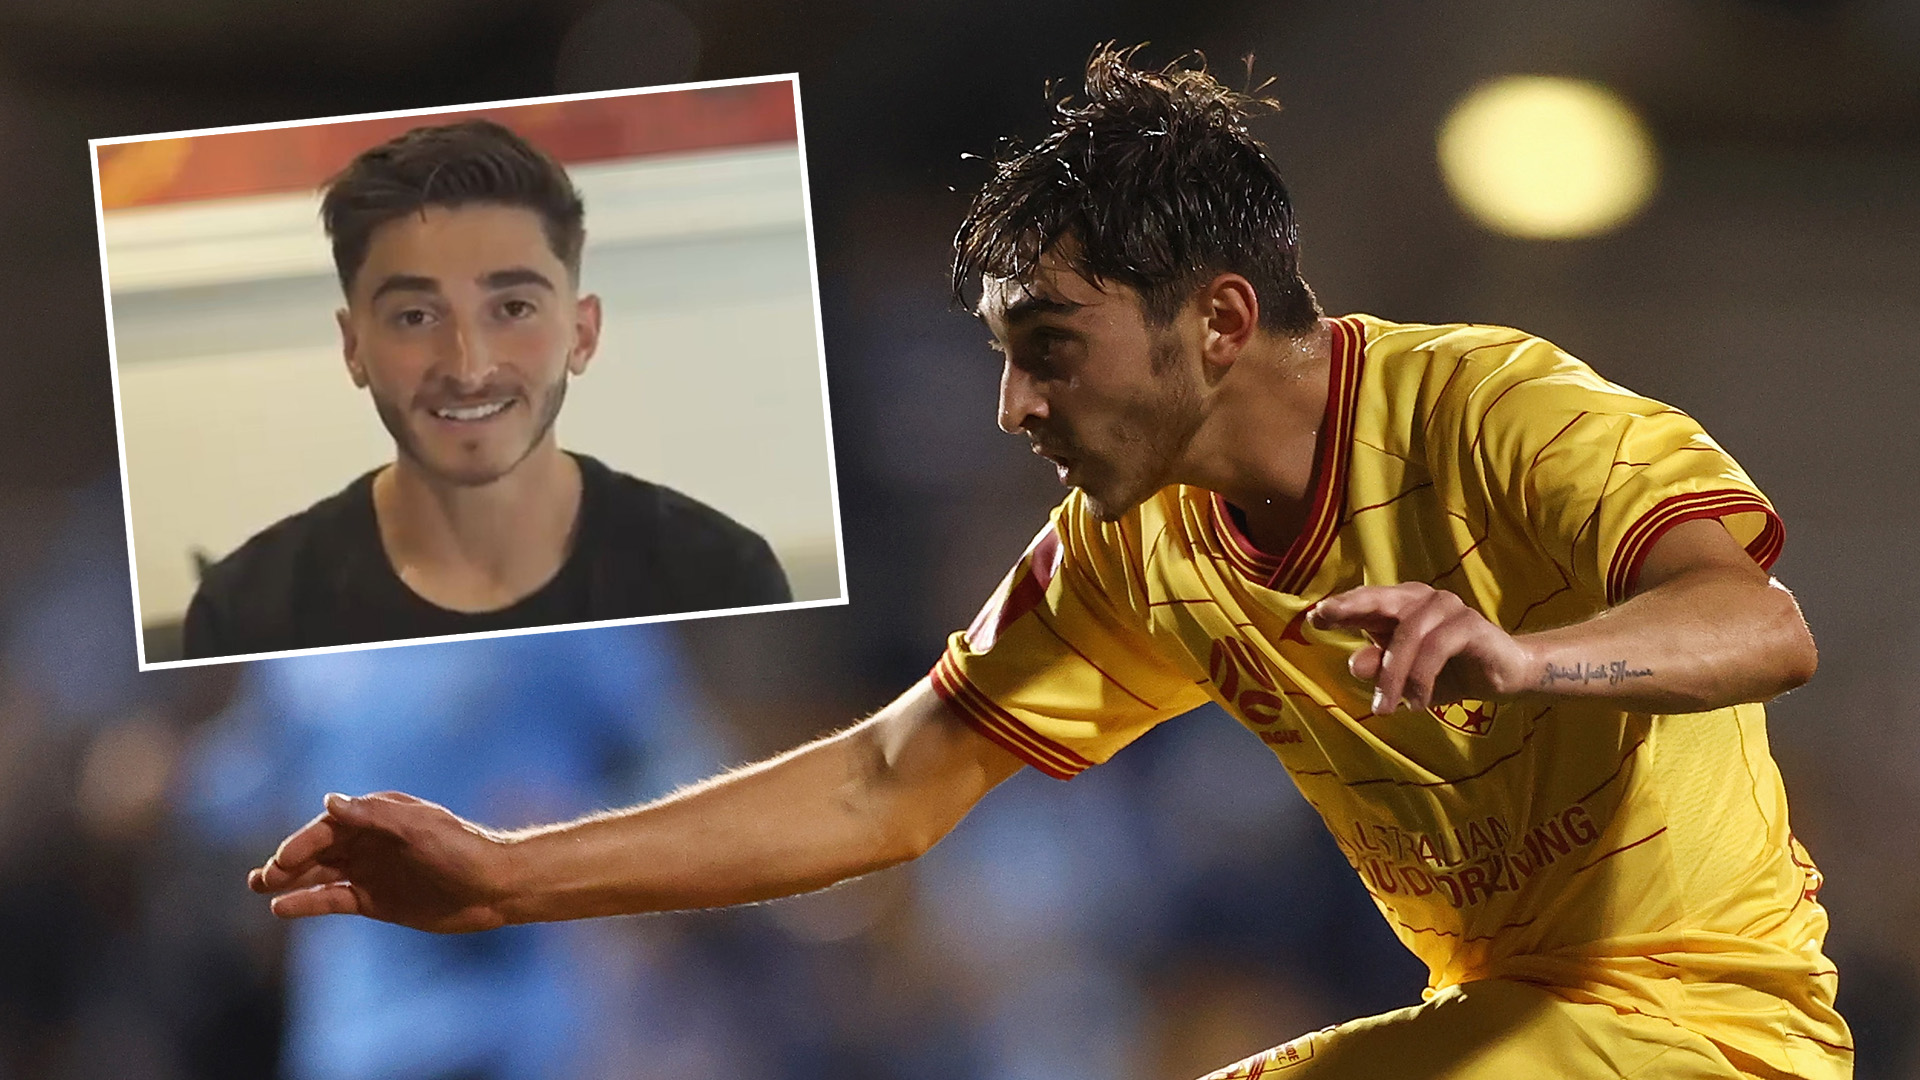 'I'm a footballer and I'm gay' - Josh Cavallo makes powerful statement as Adelaide United star calls for change